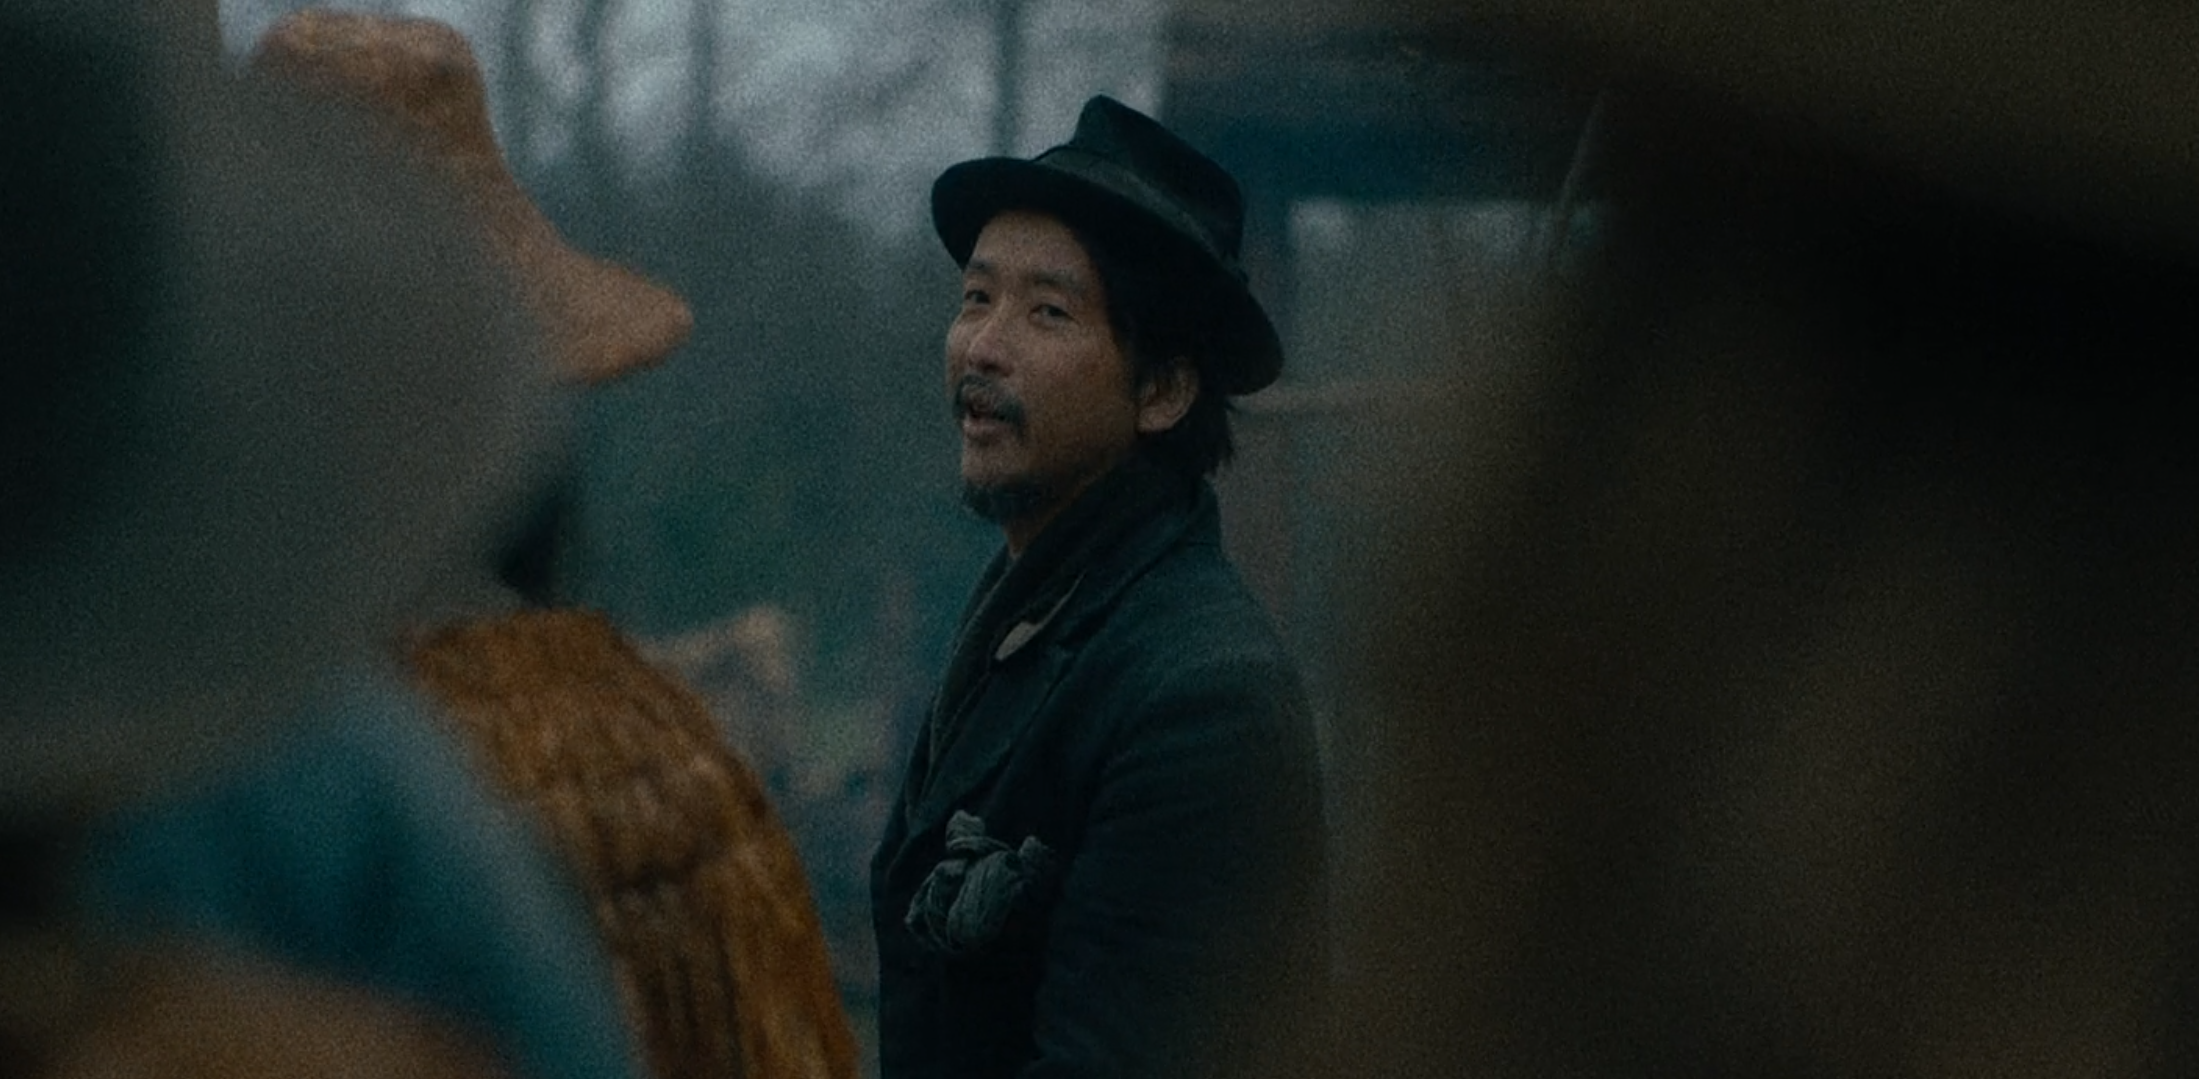 """Orion Lee as King-Lu in Kelly Reichardt's film """"First Cow"""""""